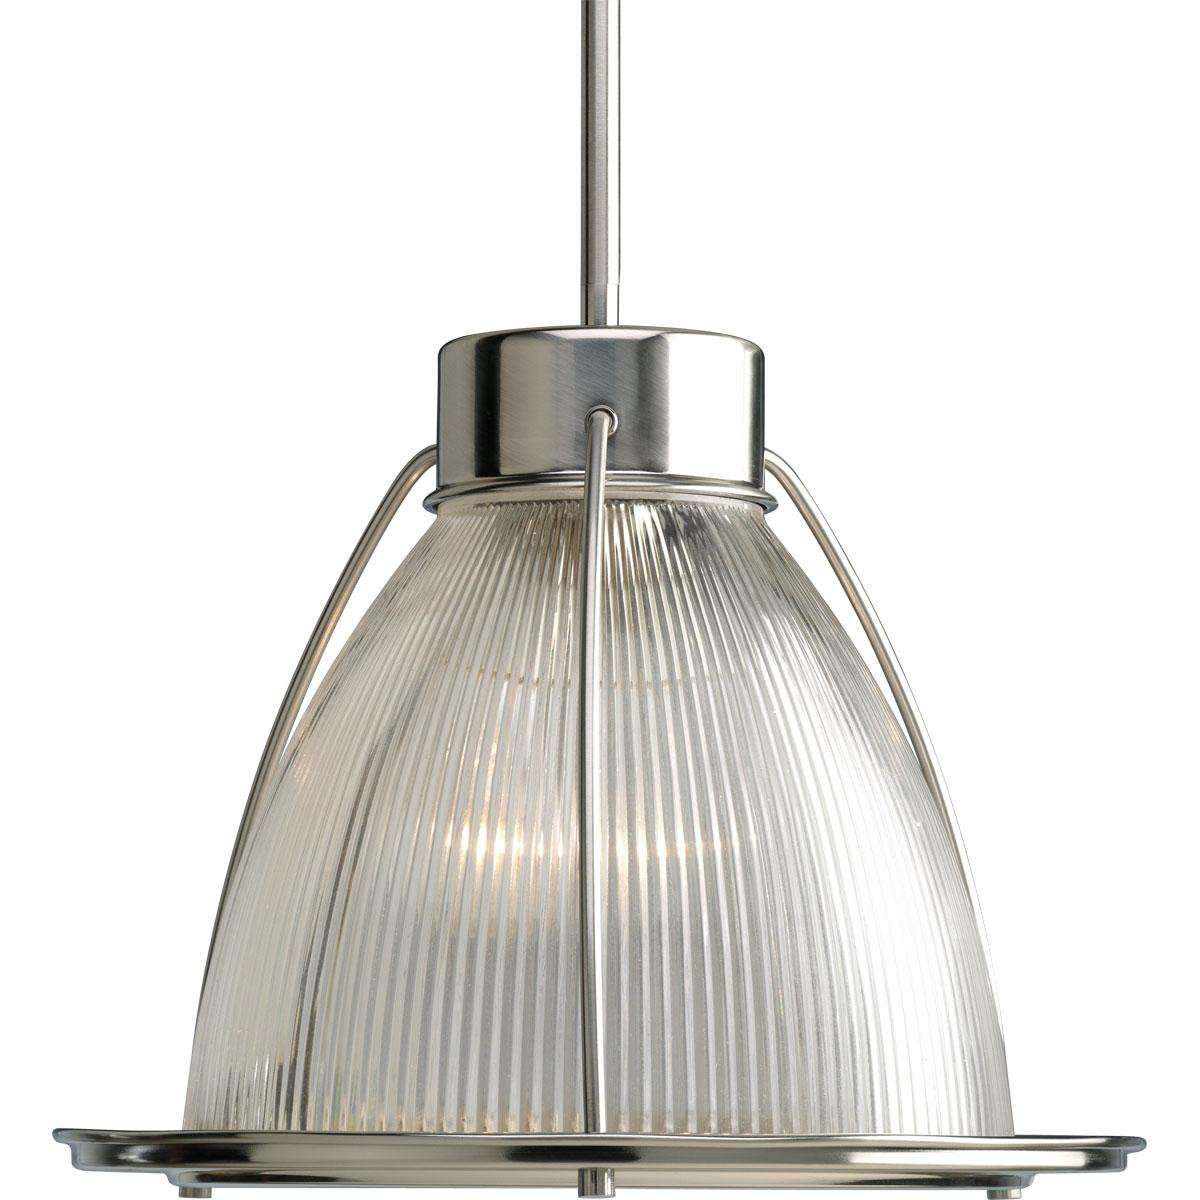 Progress P5182-09 One-light mini-pendant in Brushed Nickel finish with clear prismatic glass.